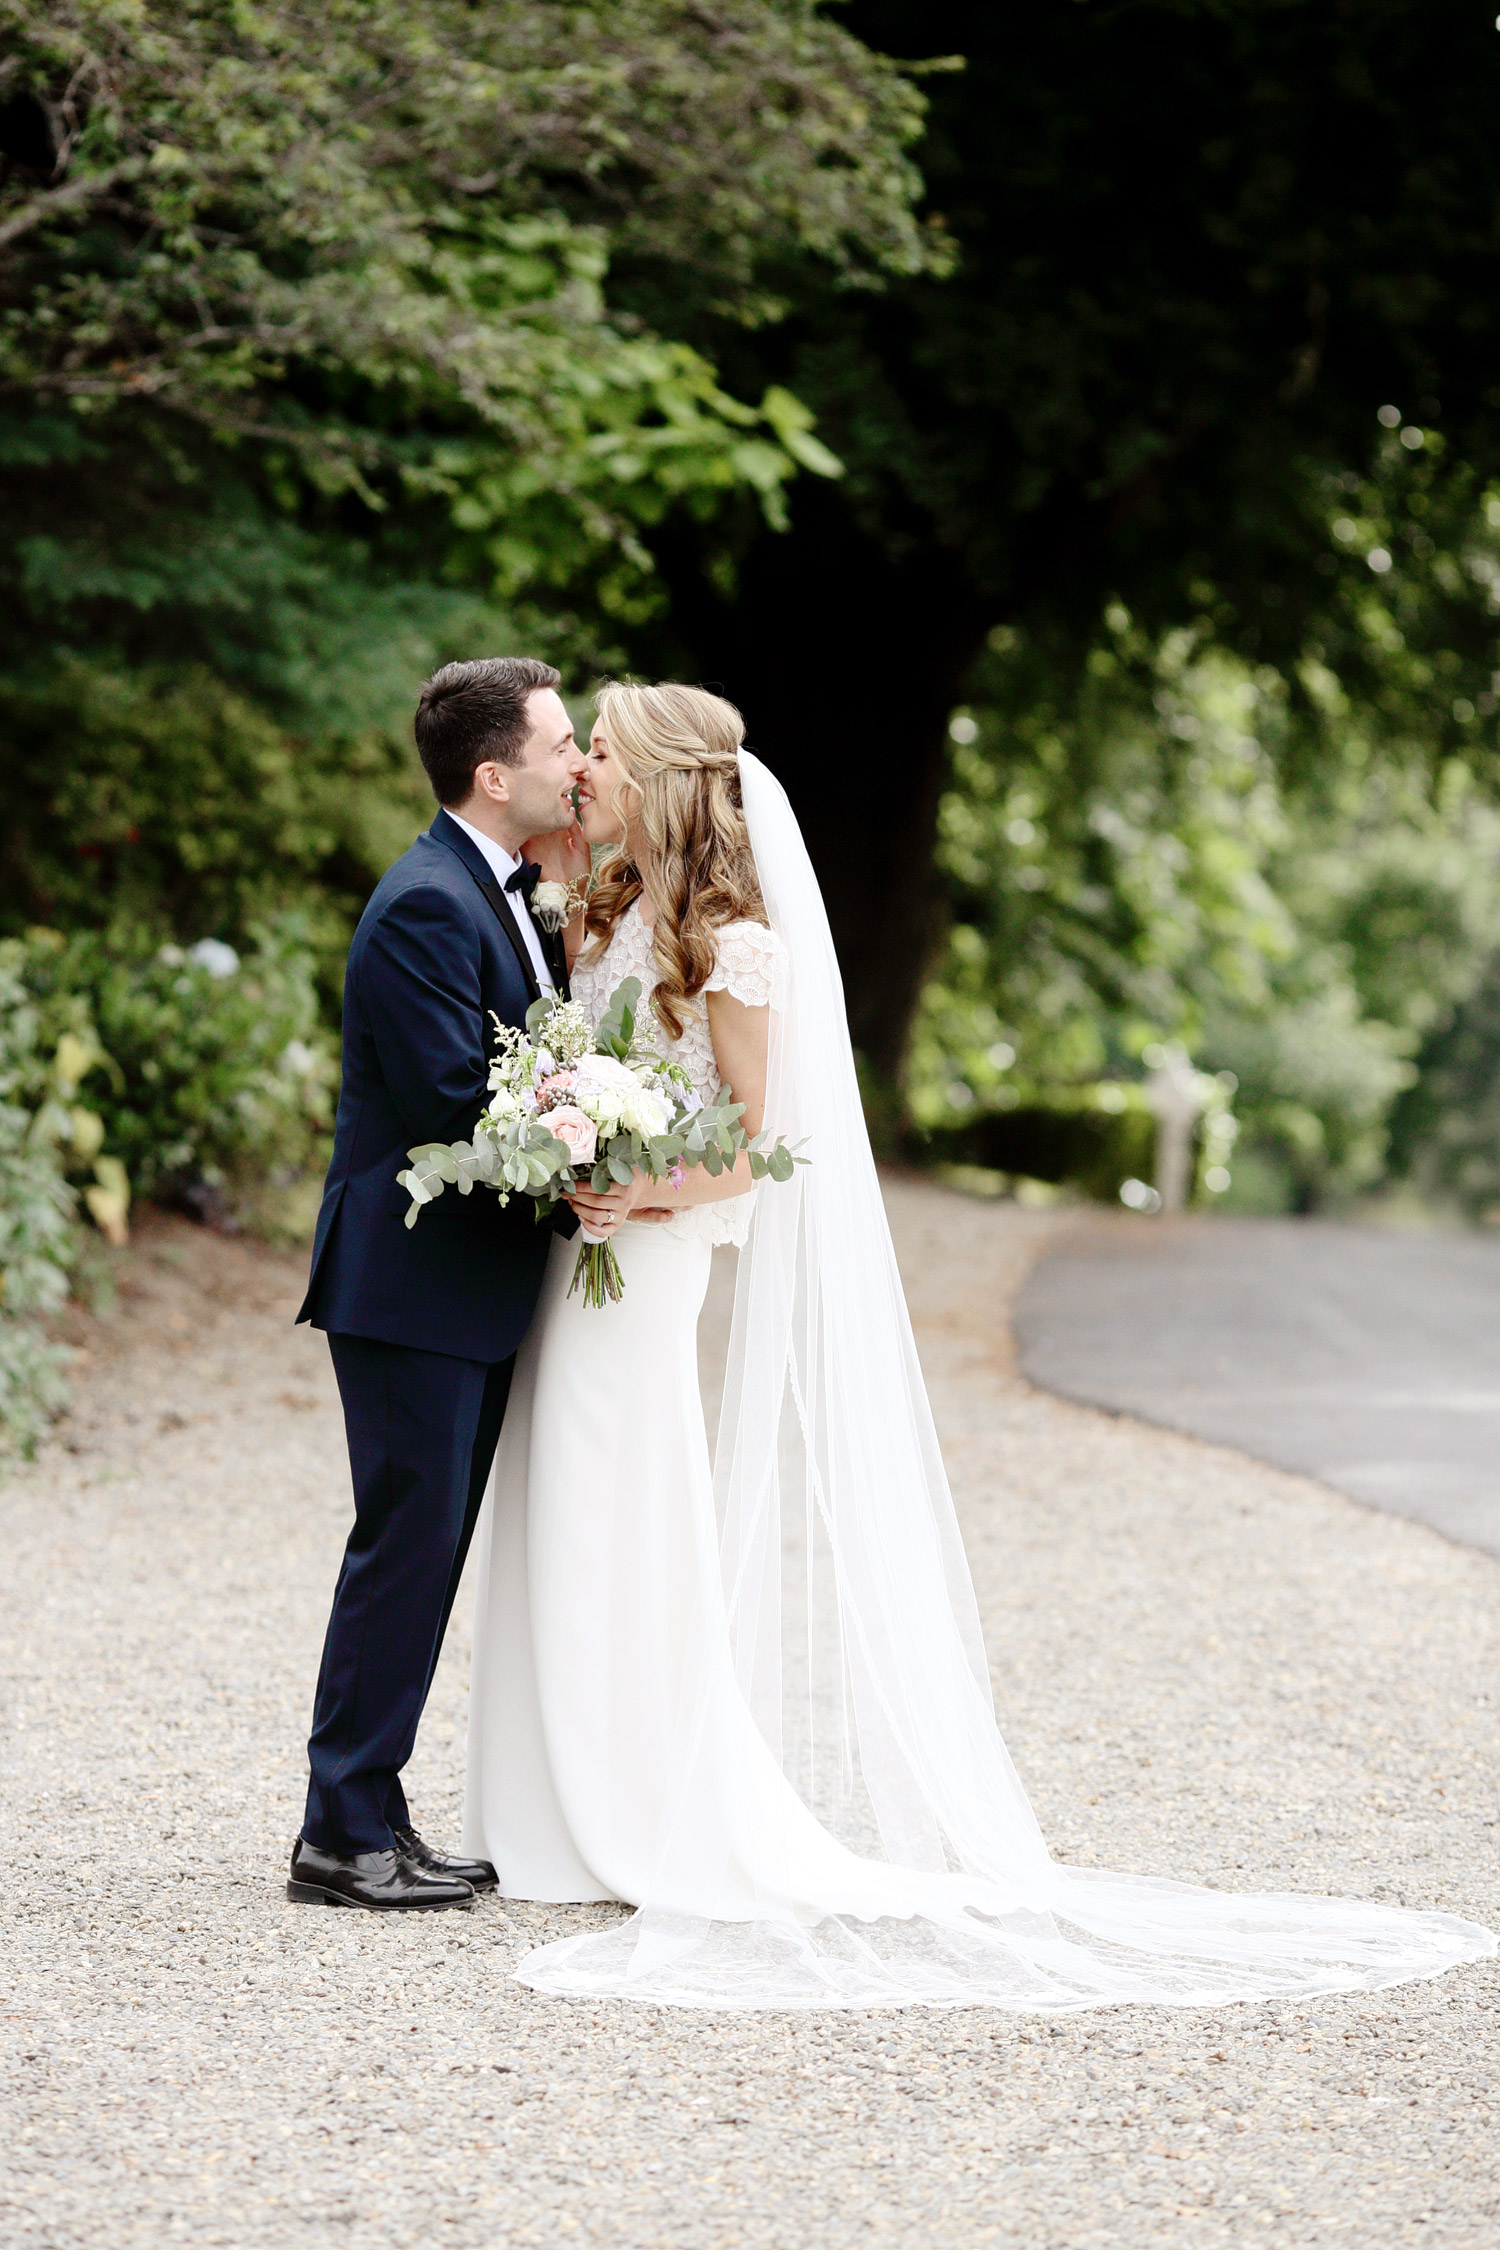 Tinakilly House wedding in Wicklow